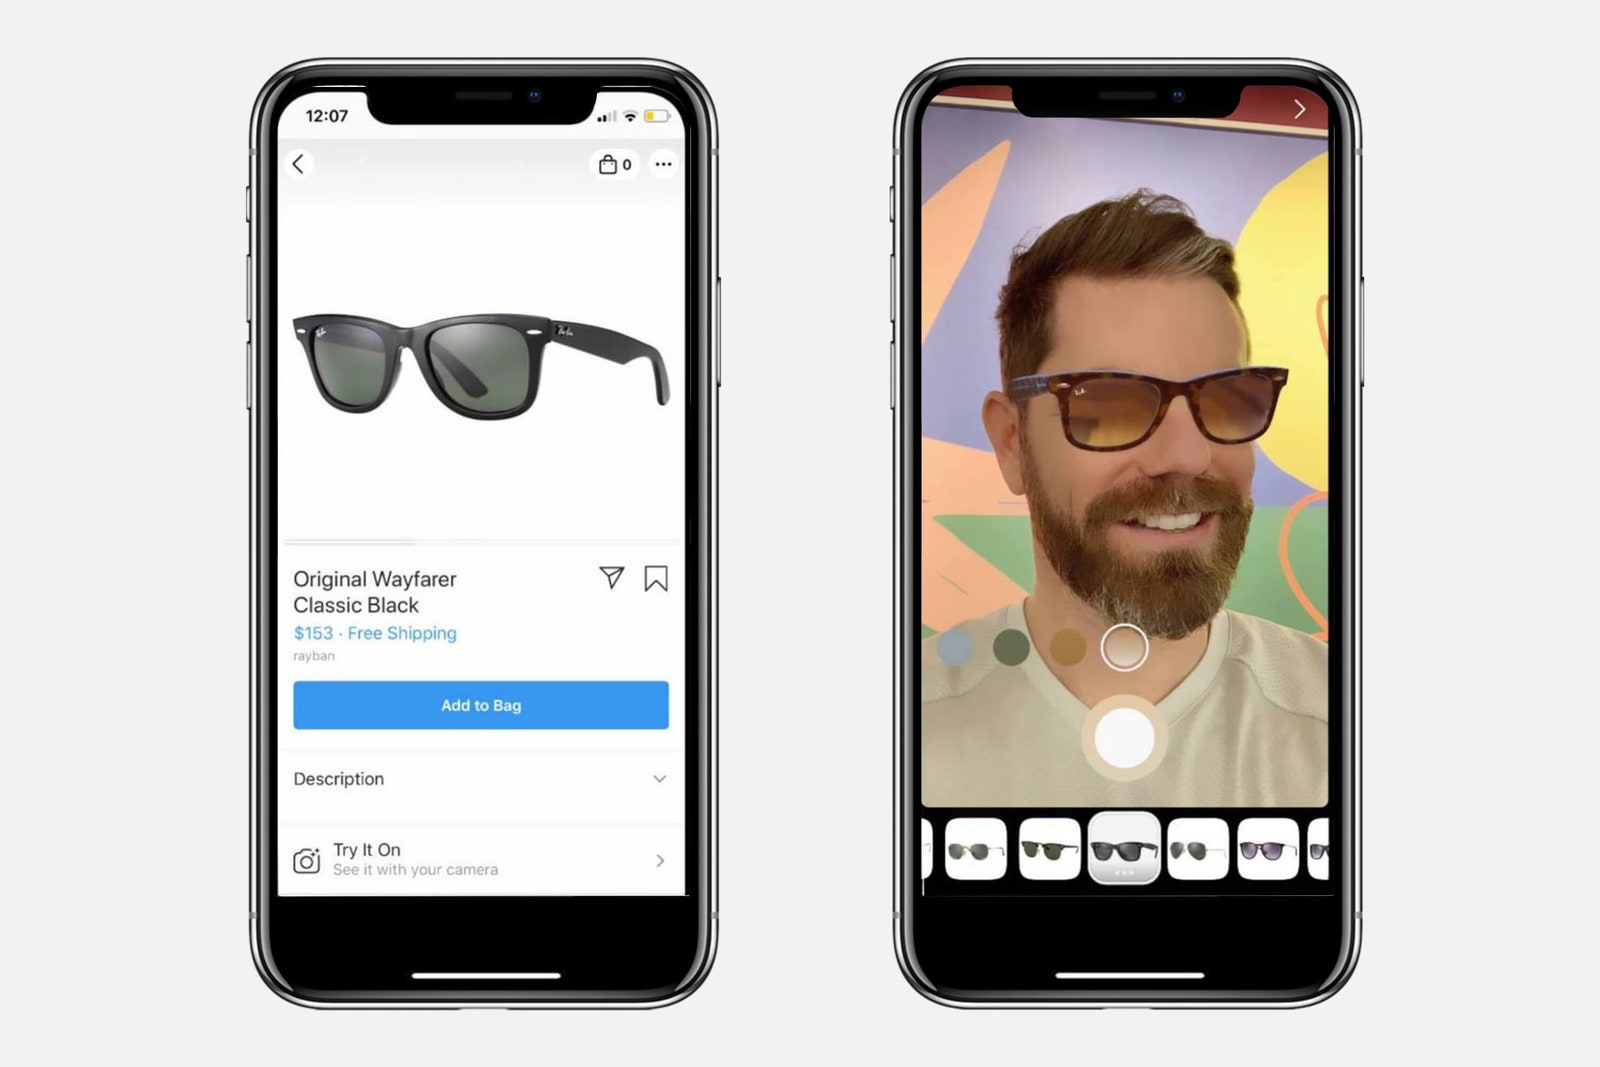 Fashion and beauty brands are taking AR more seriously | Vogue Business